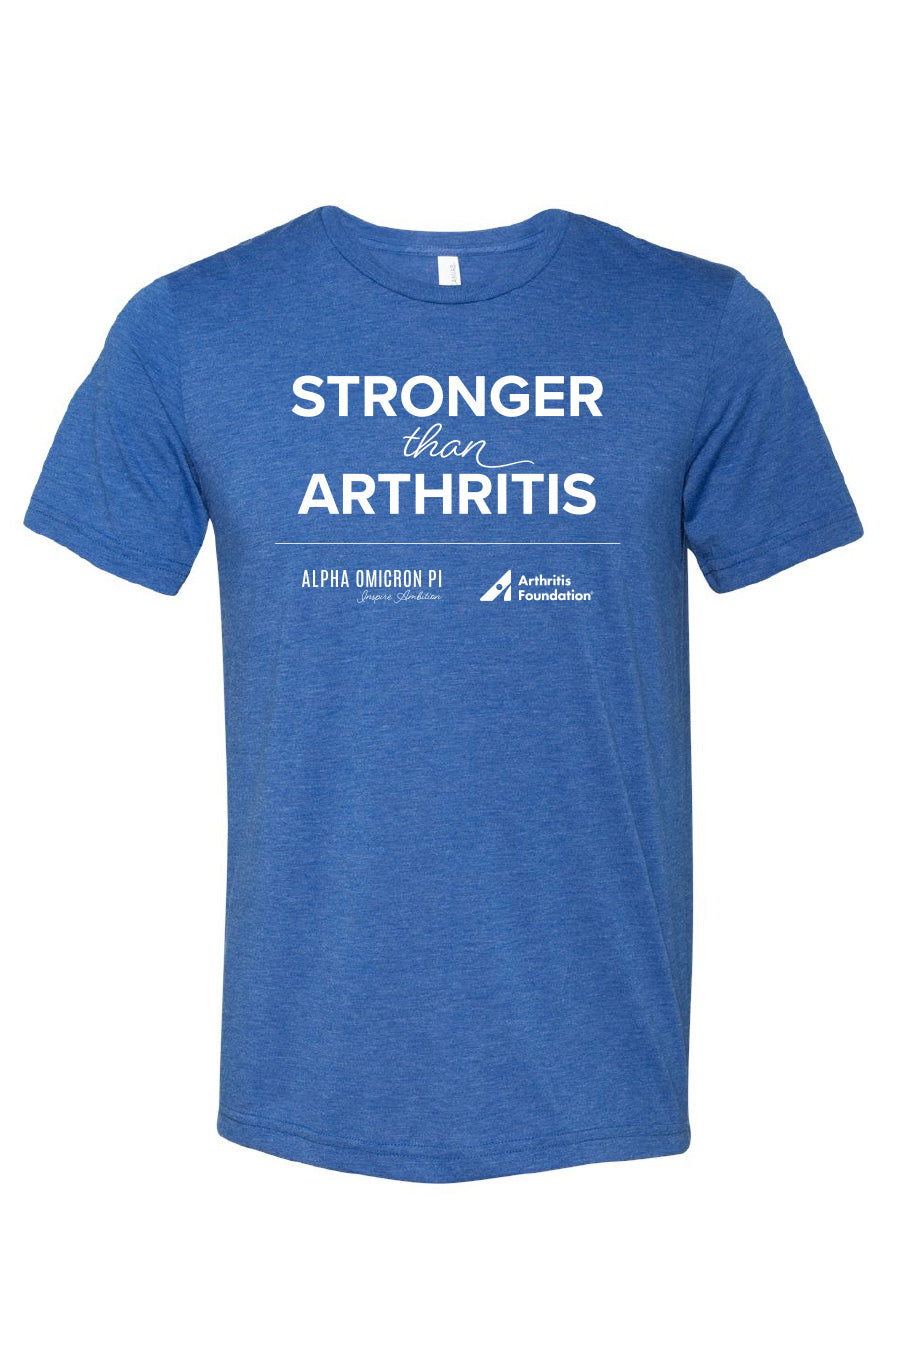 Stronger Than Arthritis Tee